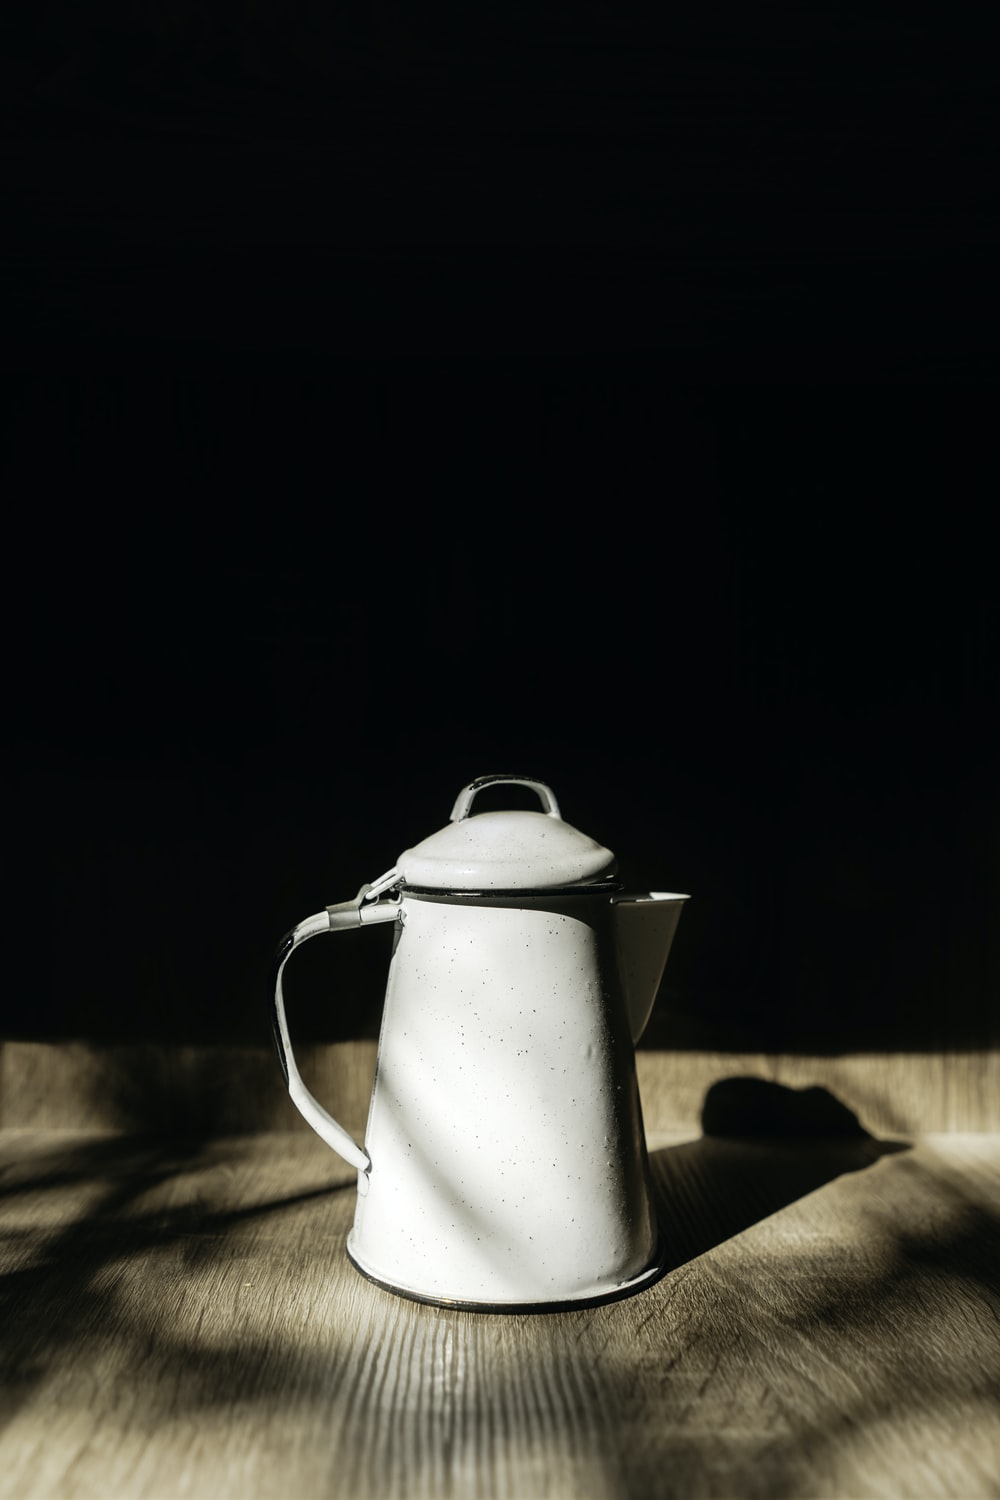 stainless steel pitcher on brown wooden table